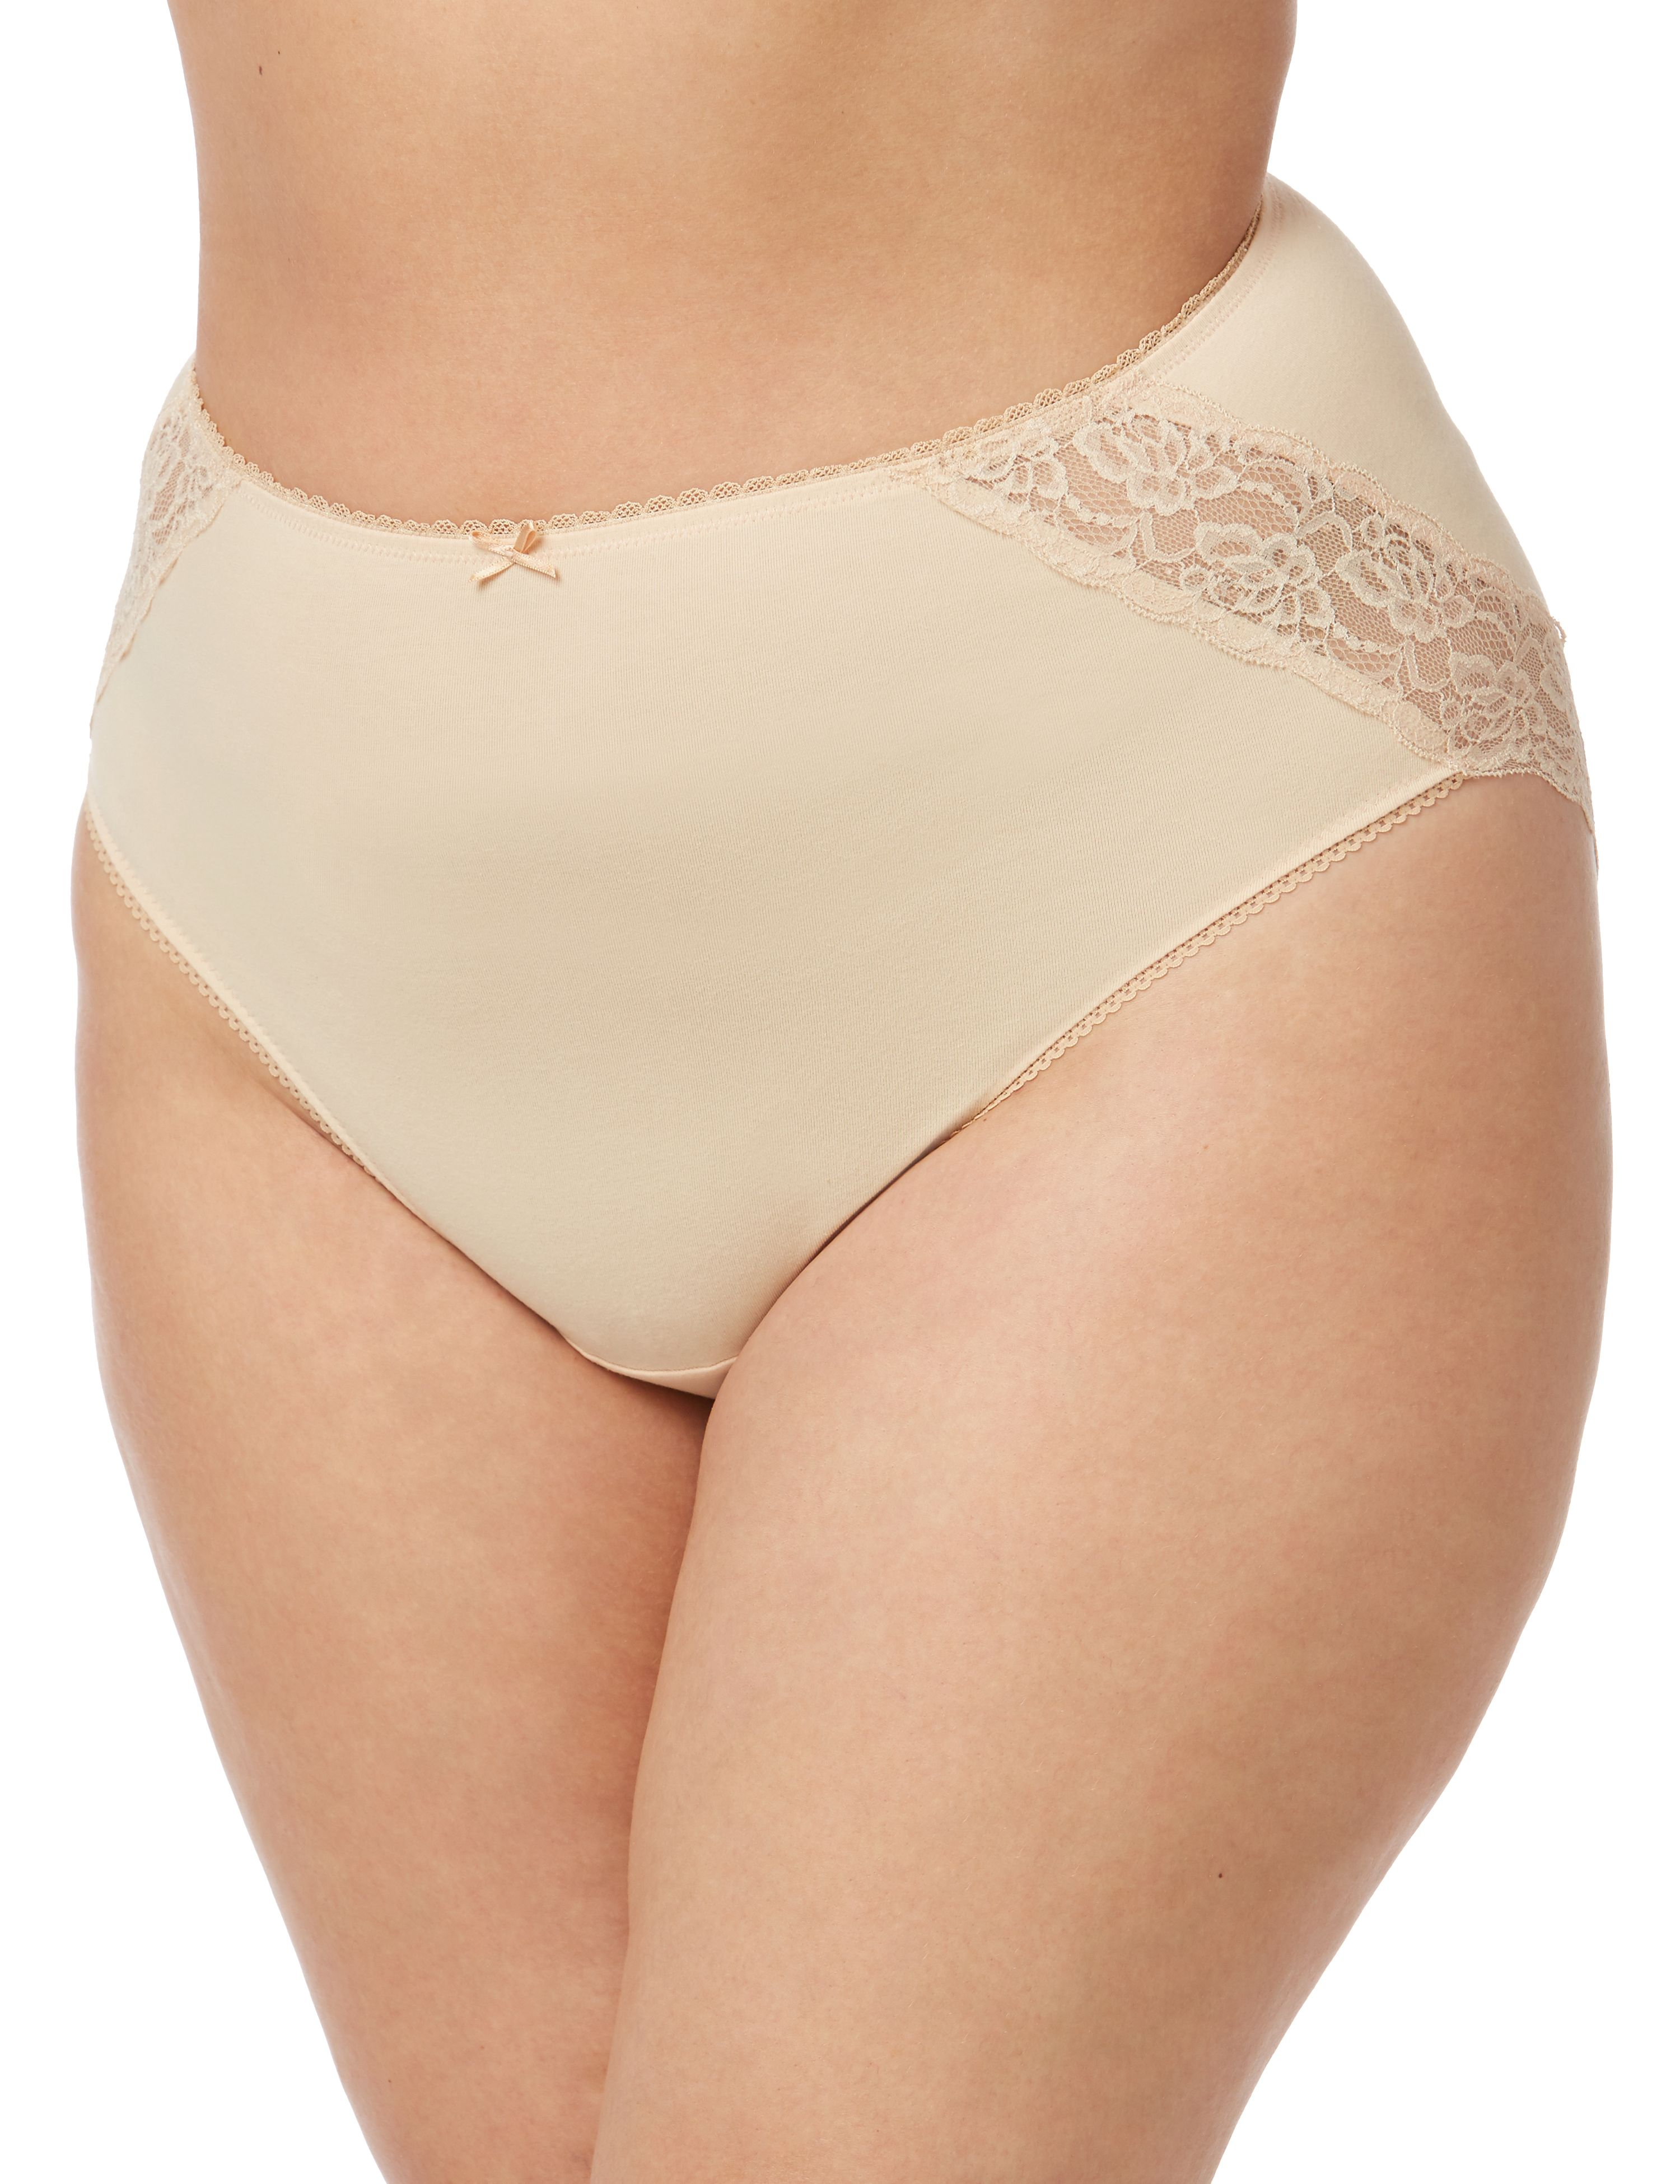 Lace Inset Microfiber Brief 1081209 The Tilly lace microfiber b MP-300094179